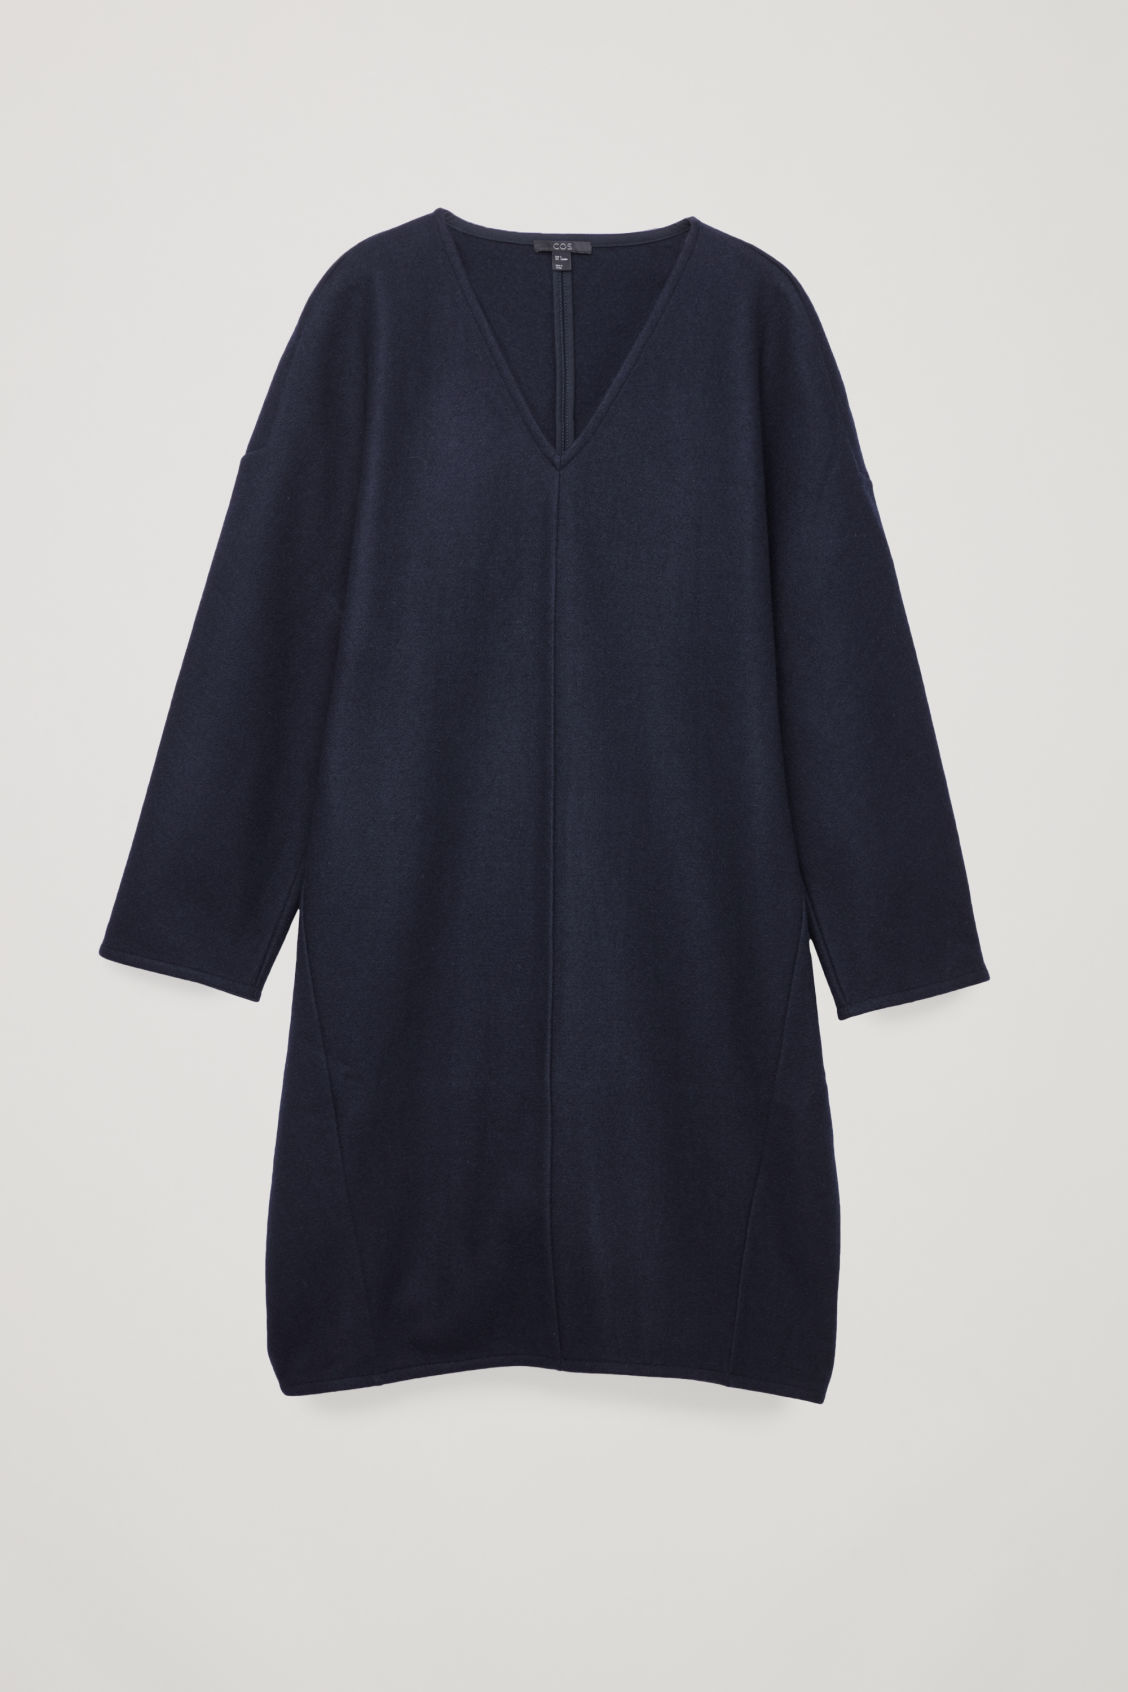 Front image of Cos oversized wool v-neck dress in blue